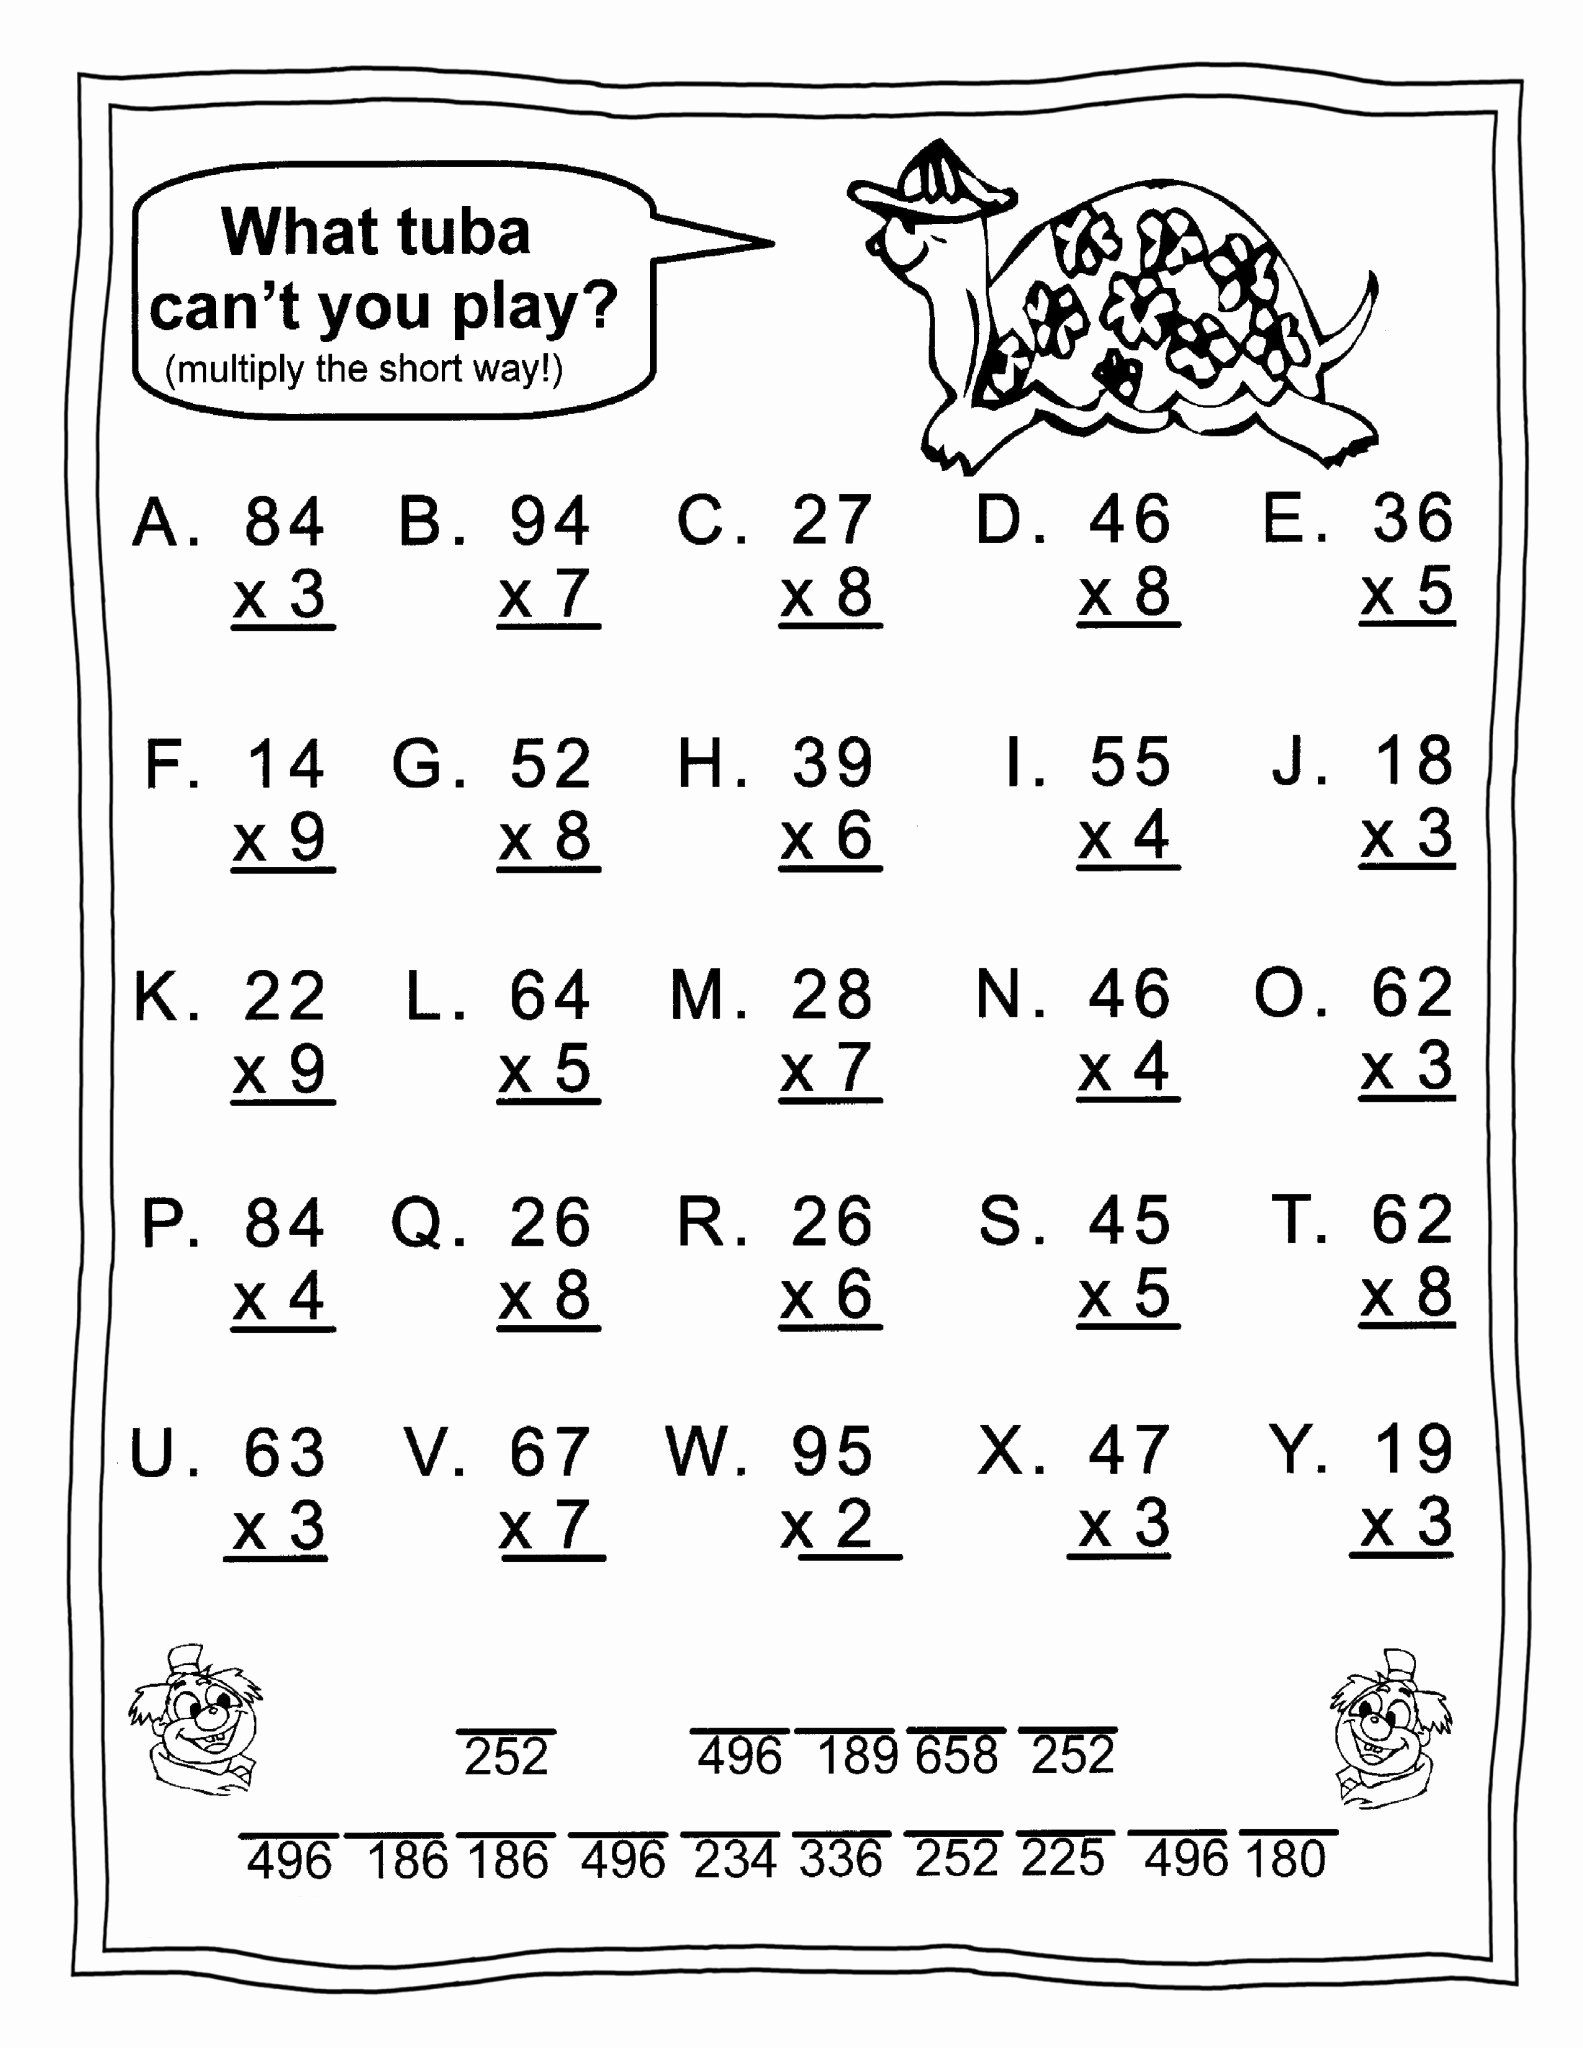 Free Printable Multiplication Worksheets for 3rd Grade Unique Worksheets 3rd Grade Math Worksheets Best Coloring for